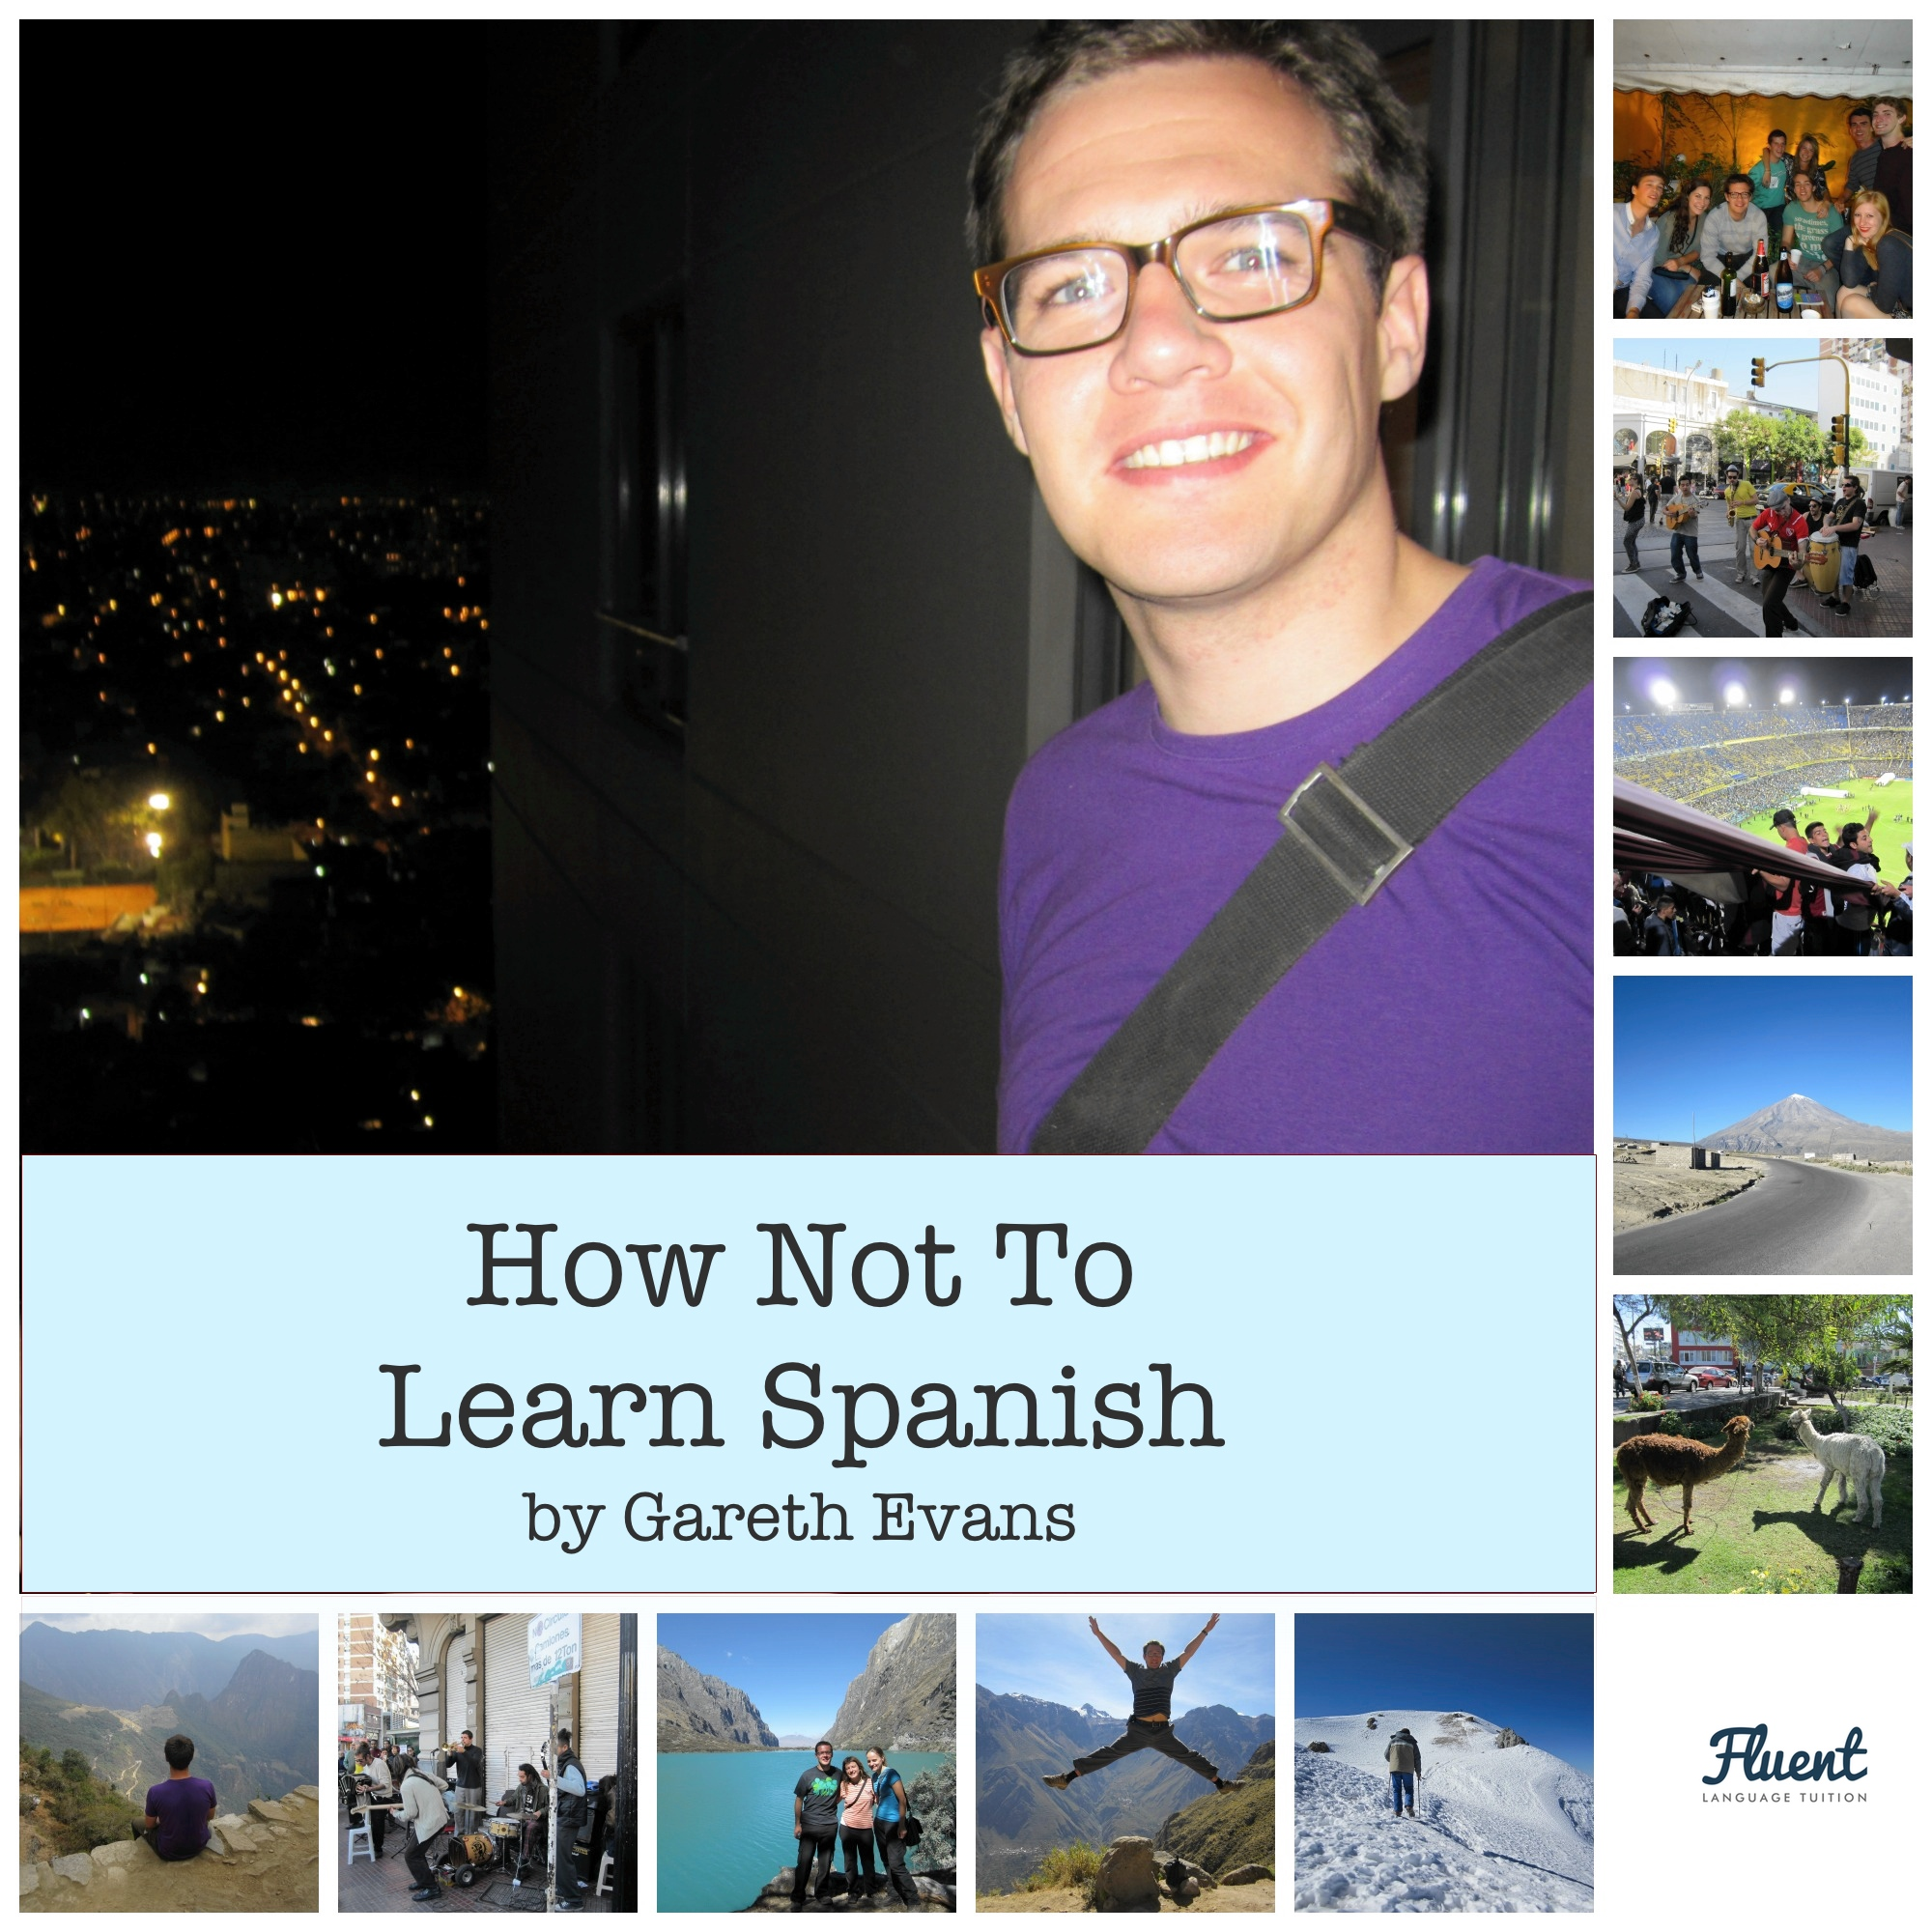 how not to learn spanish.jpg